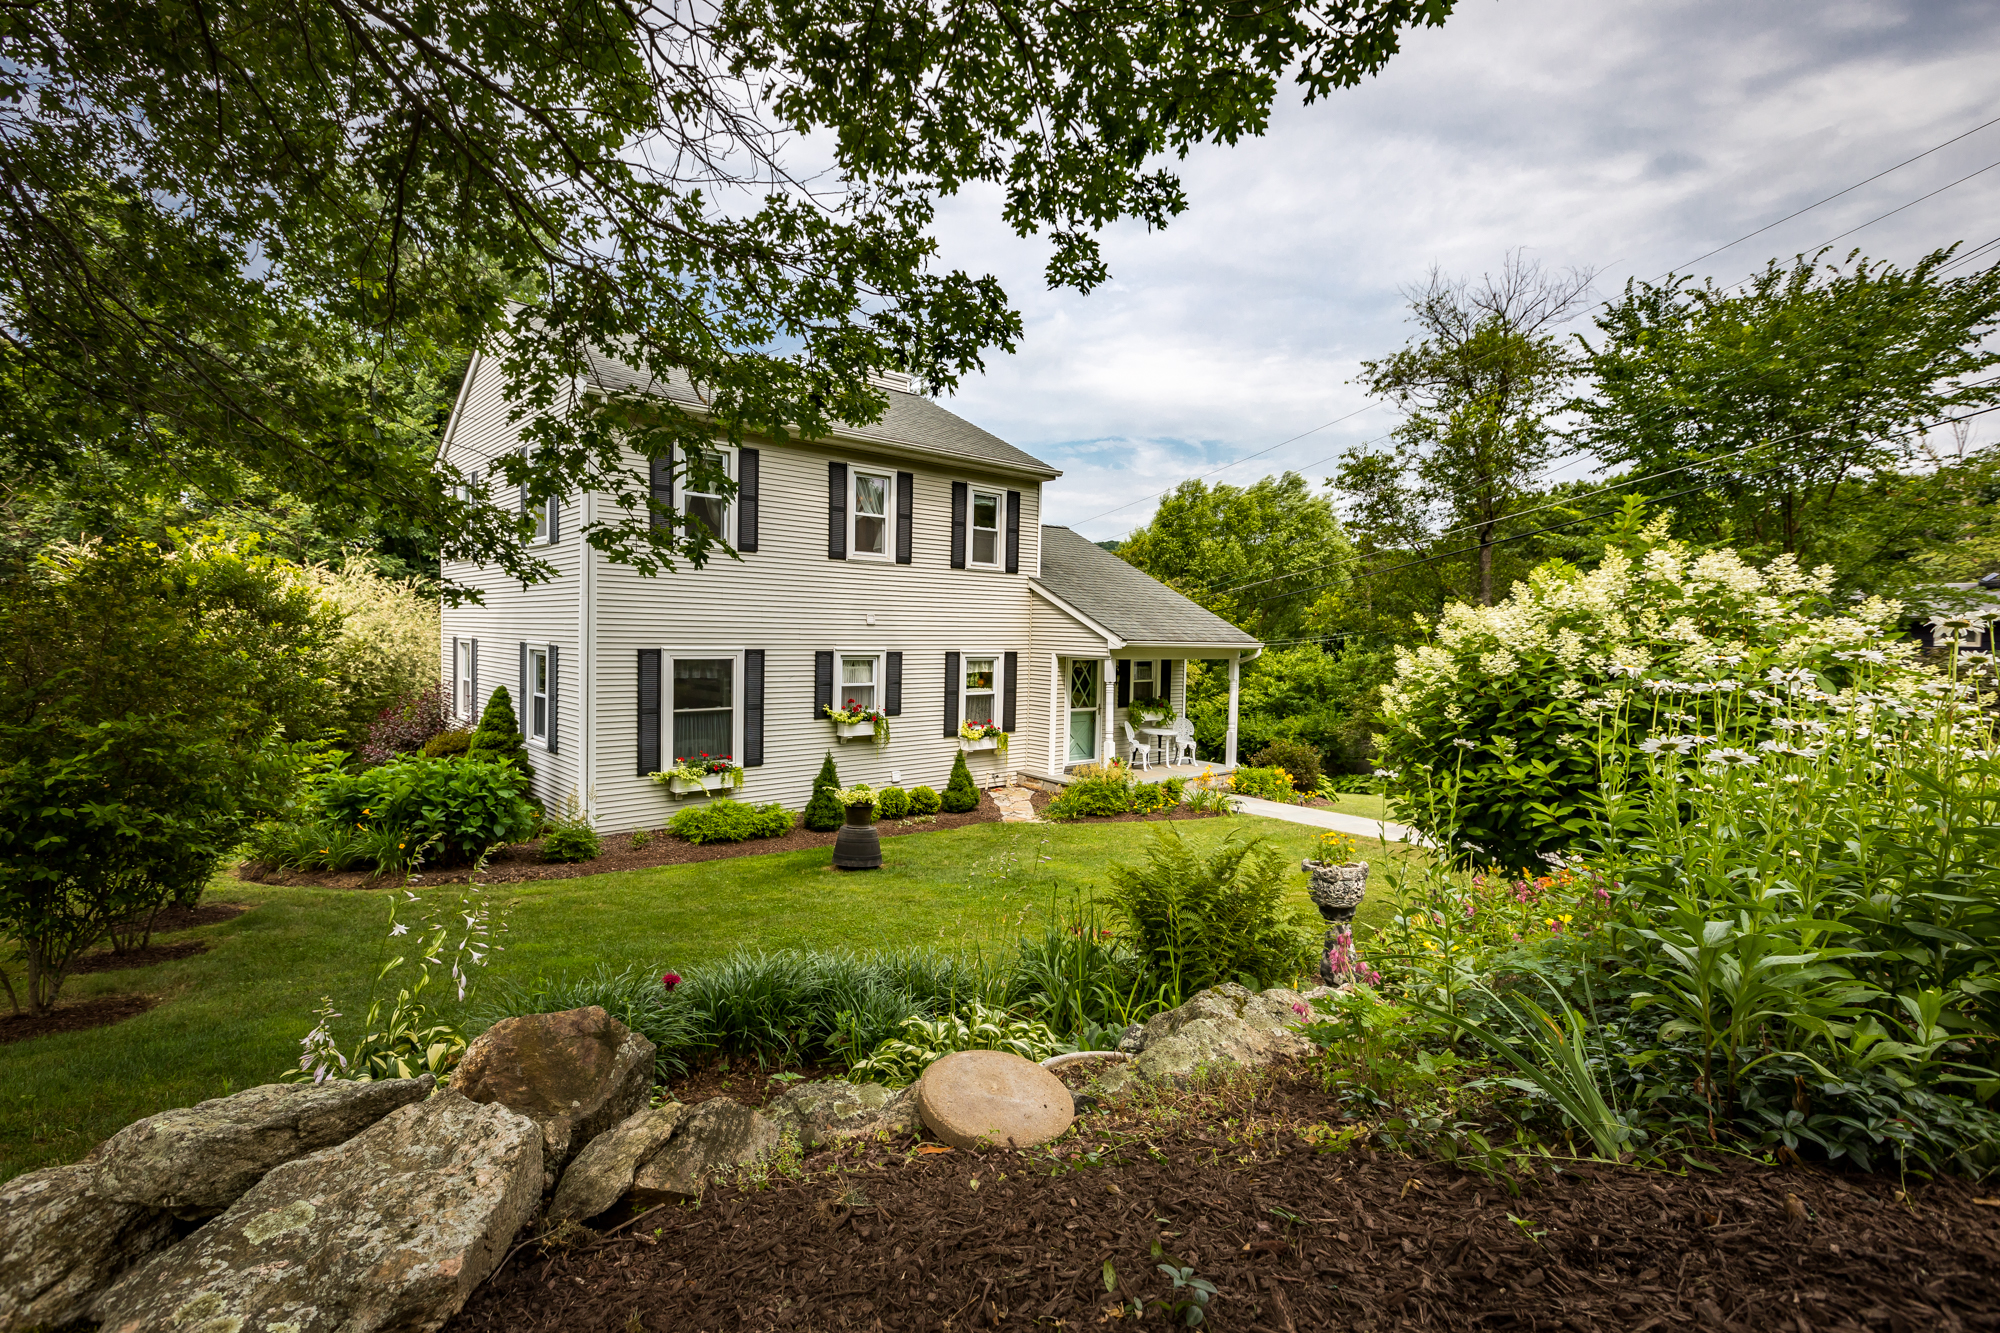 Casa unifamiliar en venta en/de 12 Overlook Drive, Danbury, Connecticut ,06811  , EUA